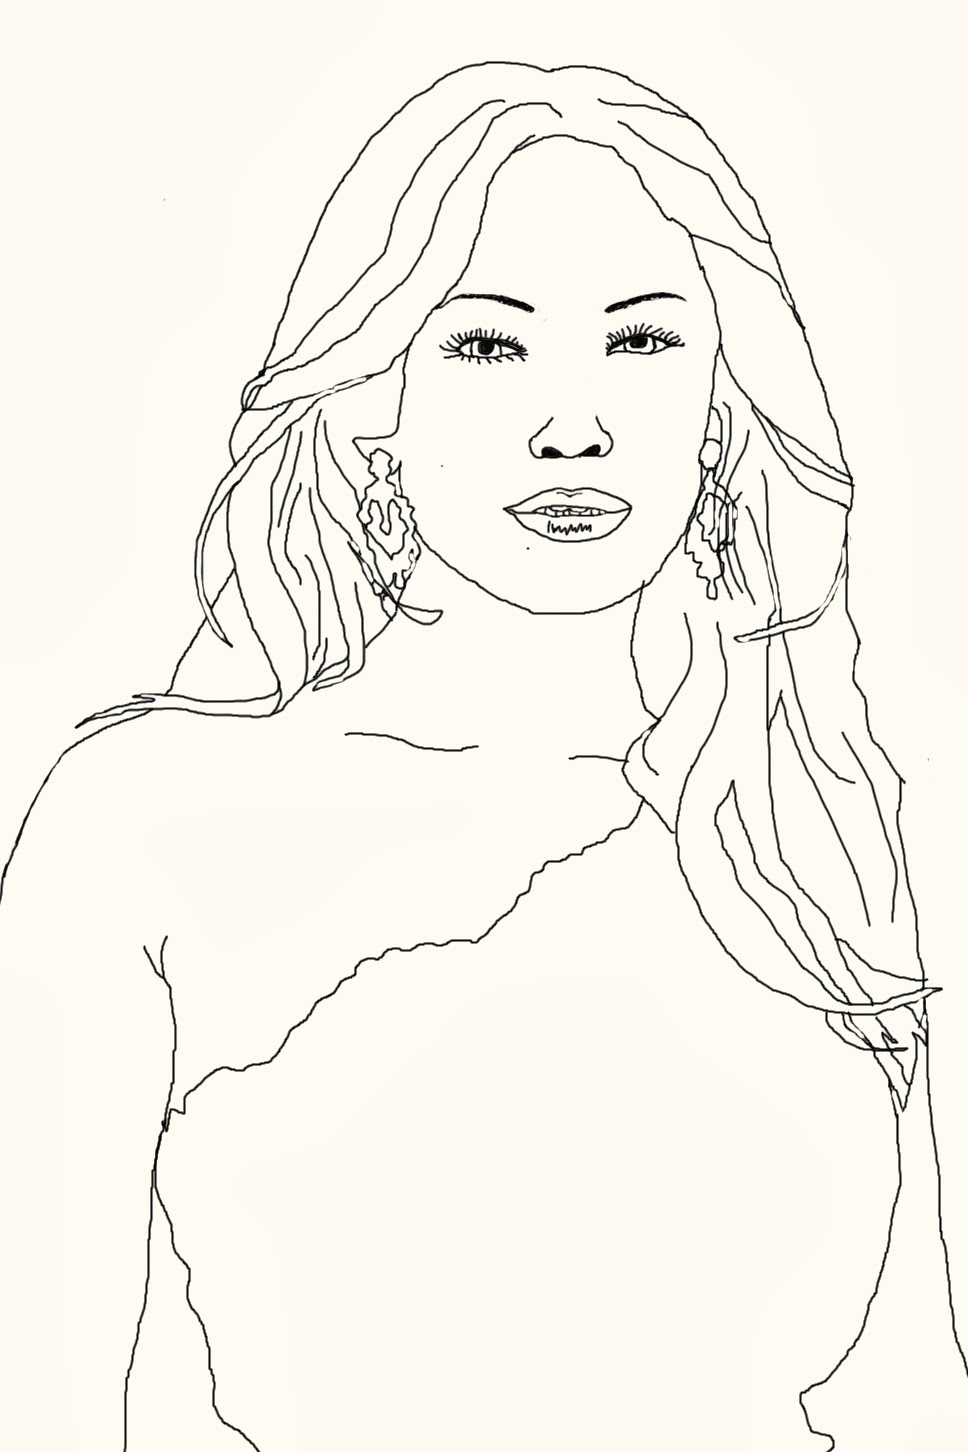 Art Attack: Celebrity Coloring Book Page: Jennifer Lopez